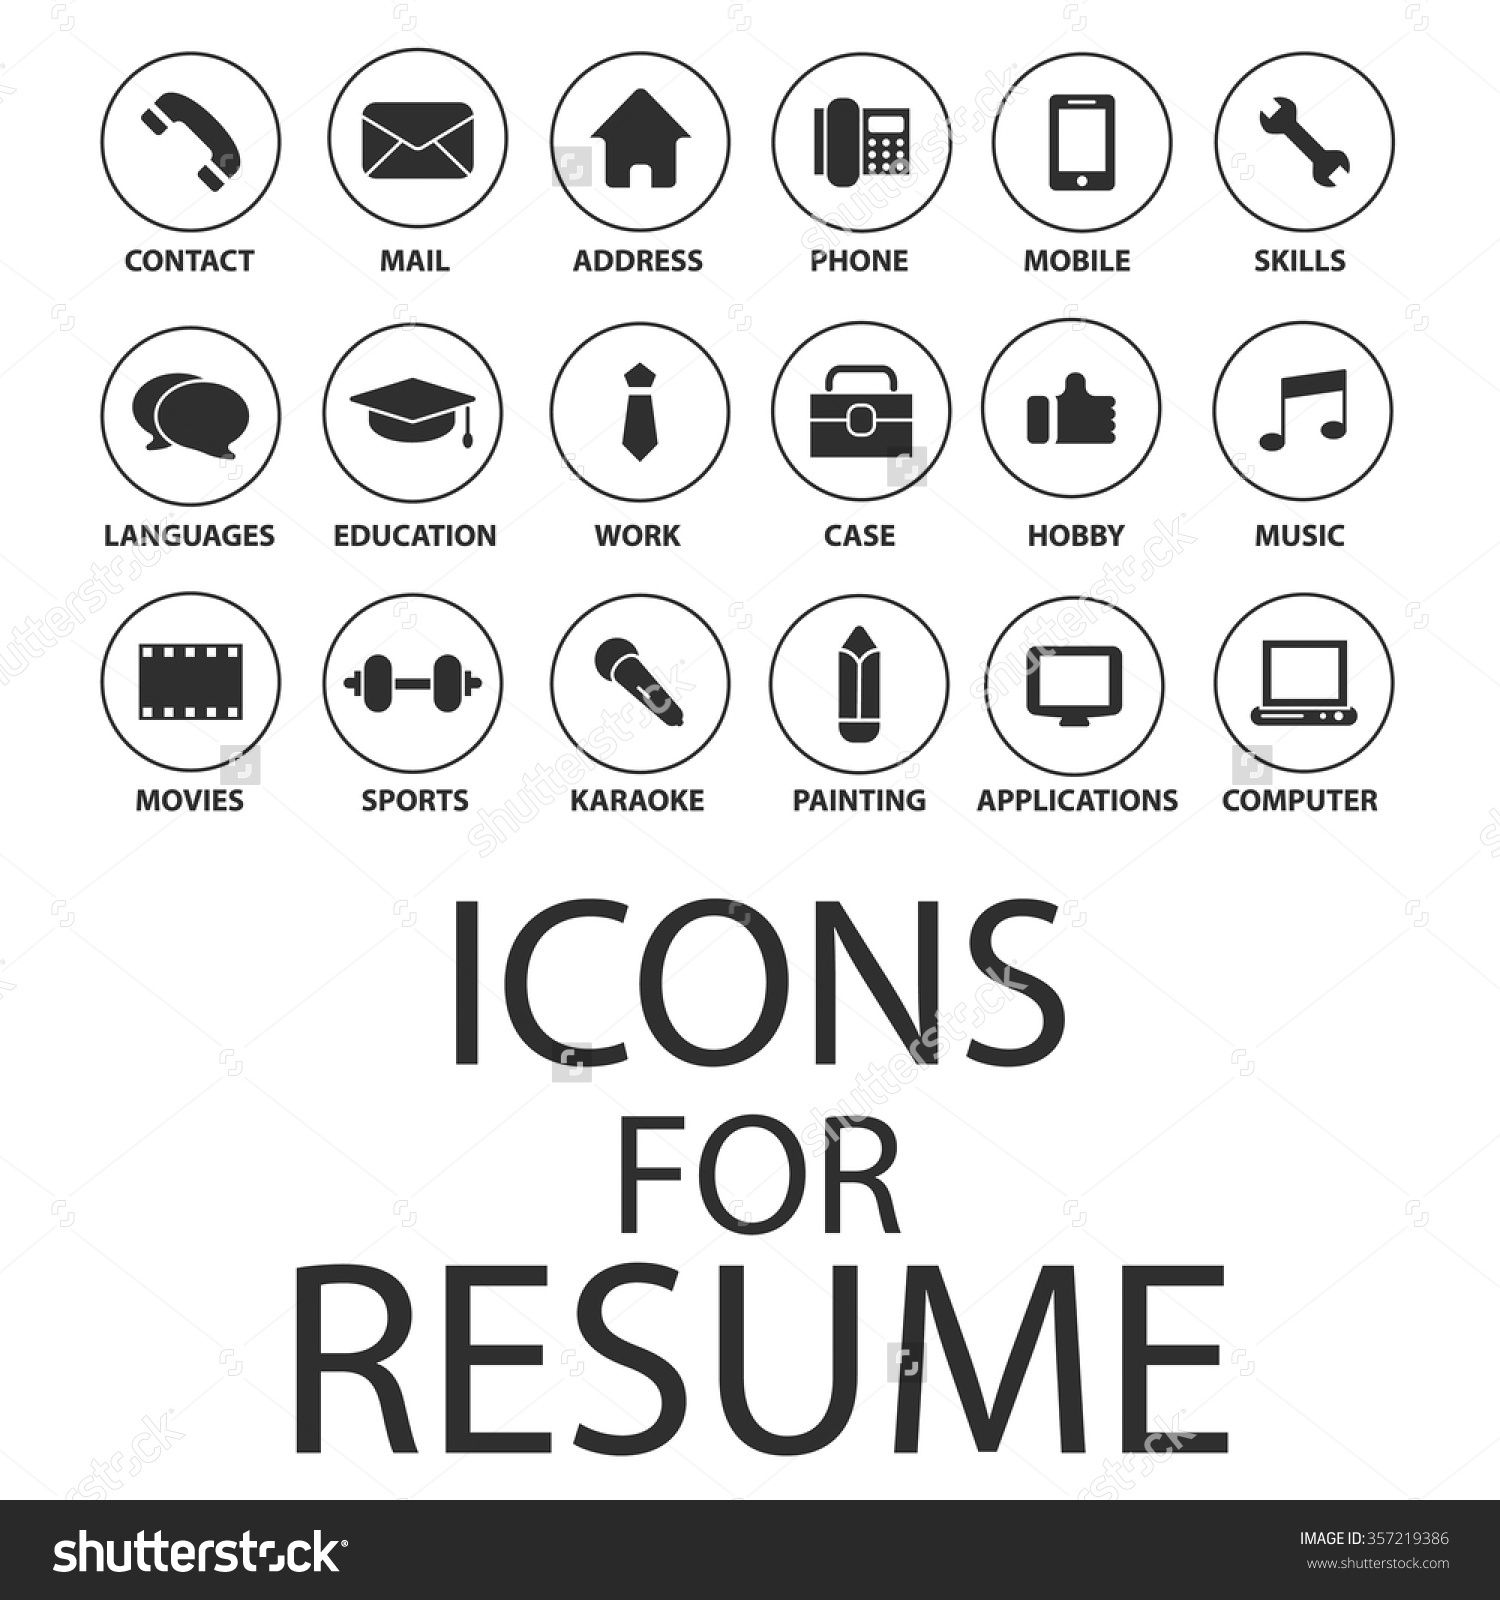 Free Resume Icons Stock Vector Icons Set For Your Resume Cv Job 357219386